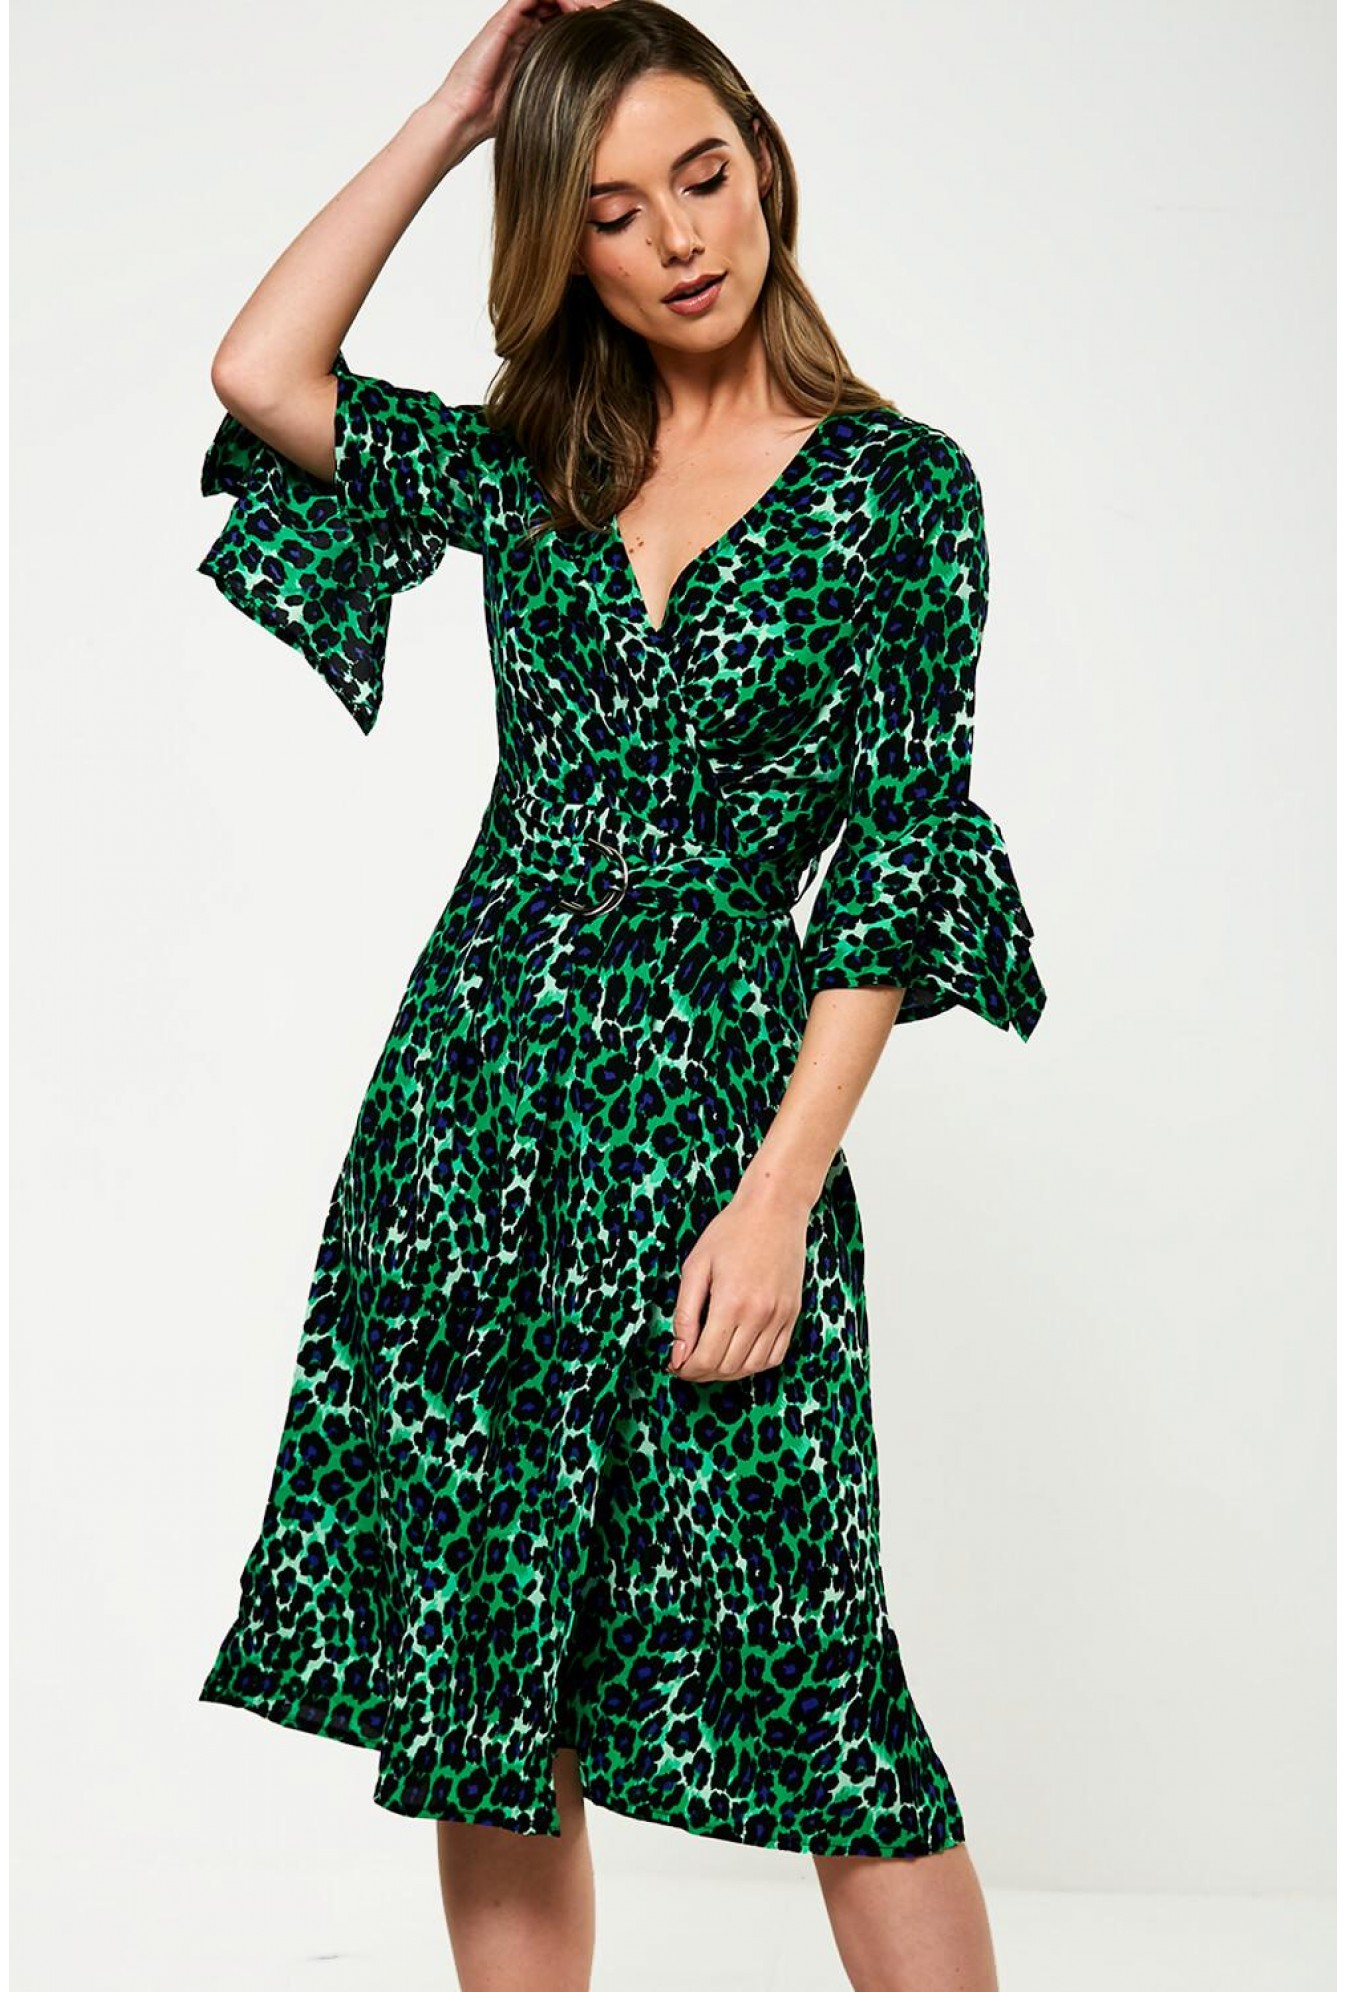 discount sale most popular shop Marc Angelo Leopard Print Midi Dress in Green | iCLOTHING